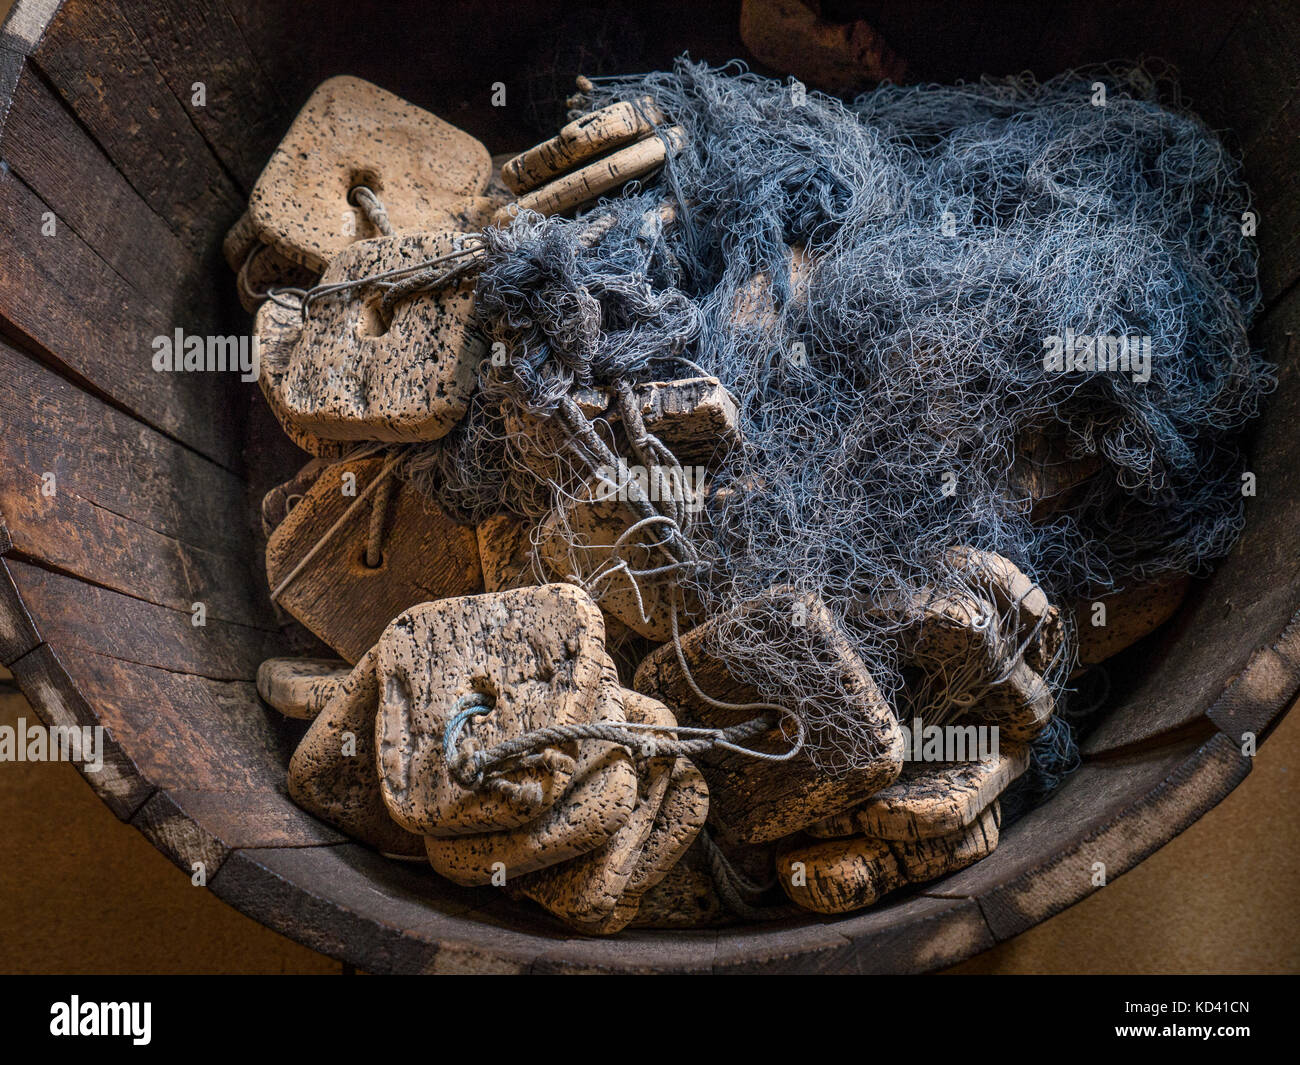 Old Cork fishing floats and netting discarded in wooden fishery tub - Stock Image